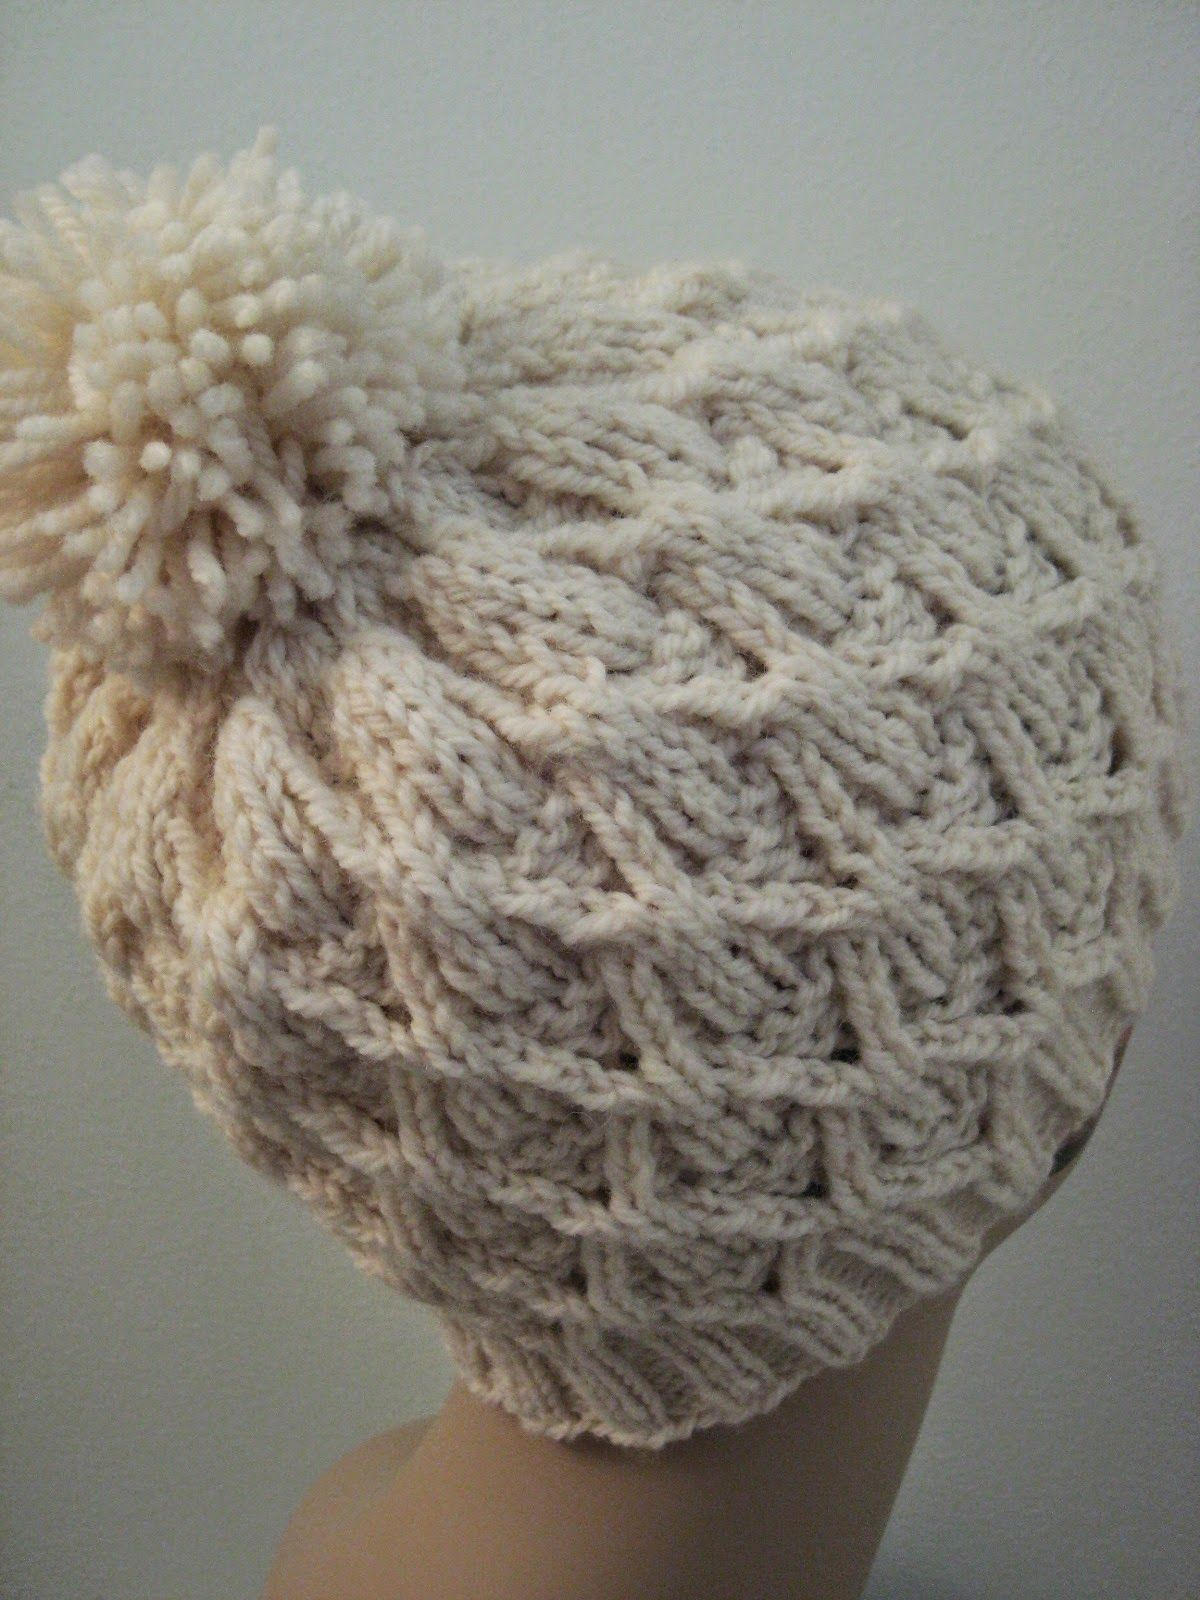 Wickerwork Hat | Knitting patterns, Patons classic wool and Patterns